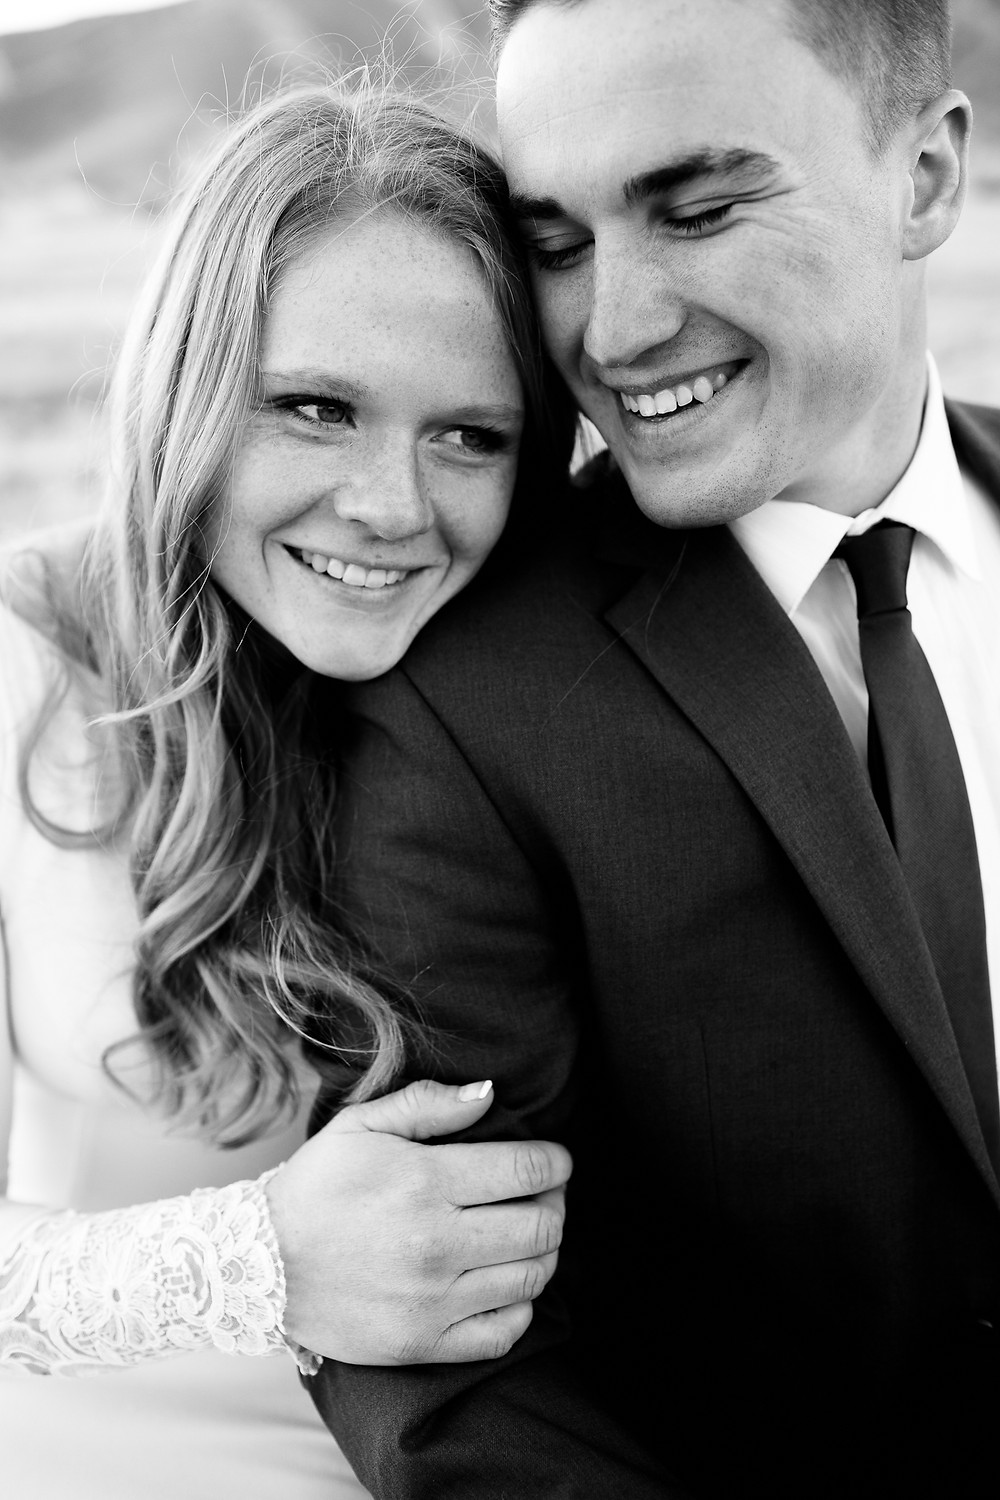 bride and groom smiling at each other in black and white